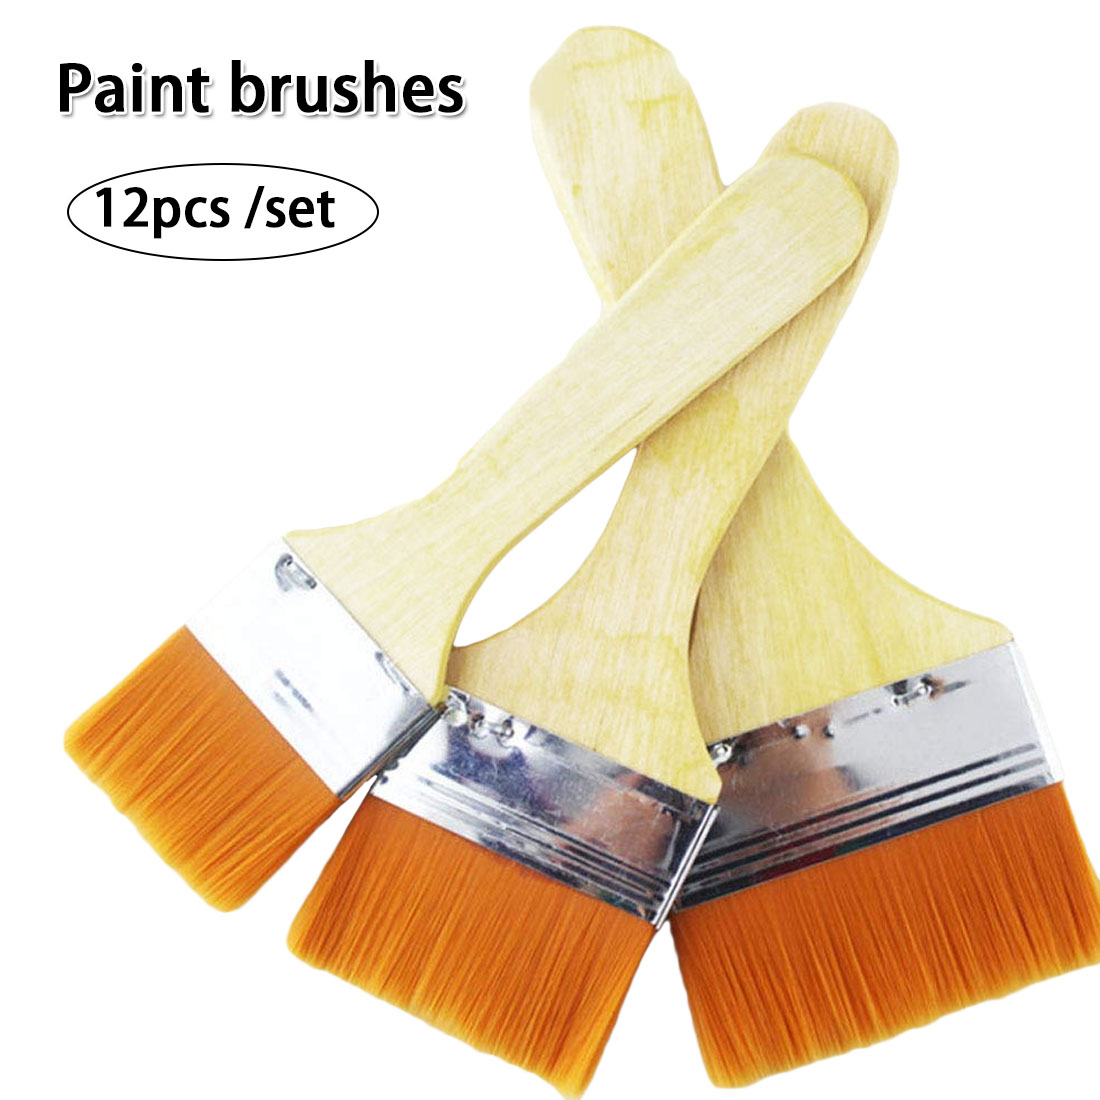 12pcs/set Home Tool Wall Decor Reusable Barbecue Nylon Gouache With Wood Handles Oil Painting For Children Paint Brush